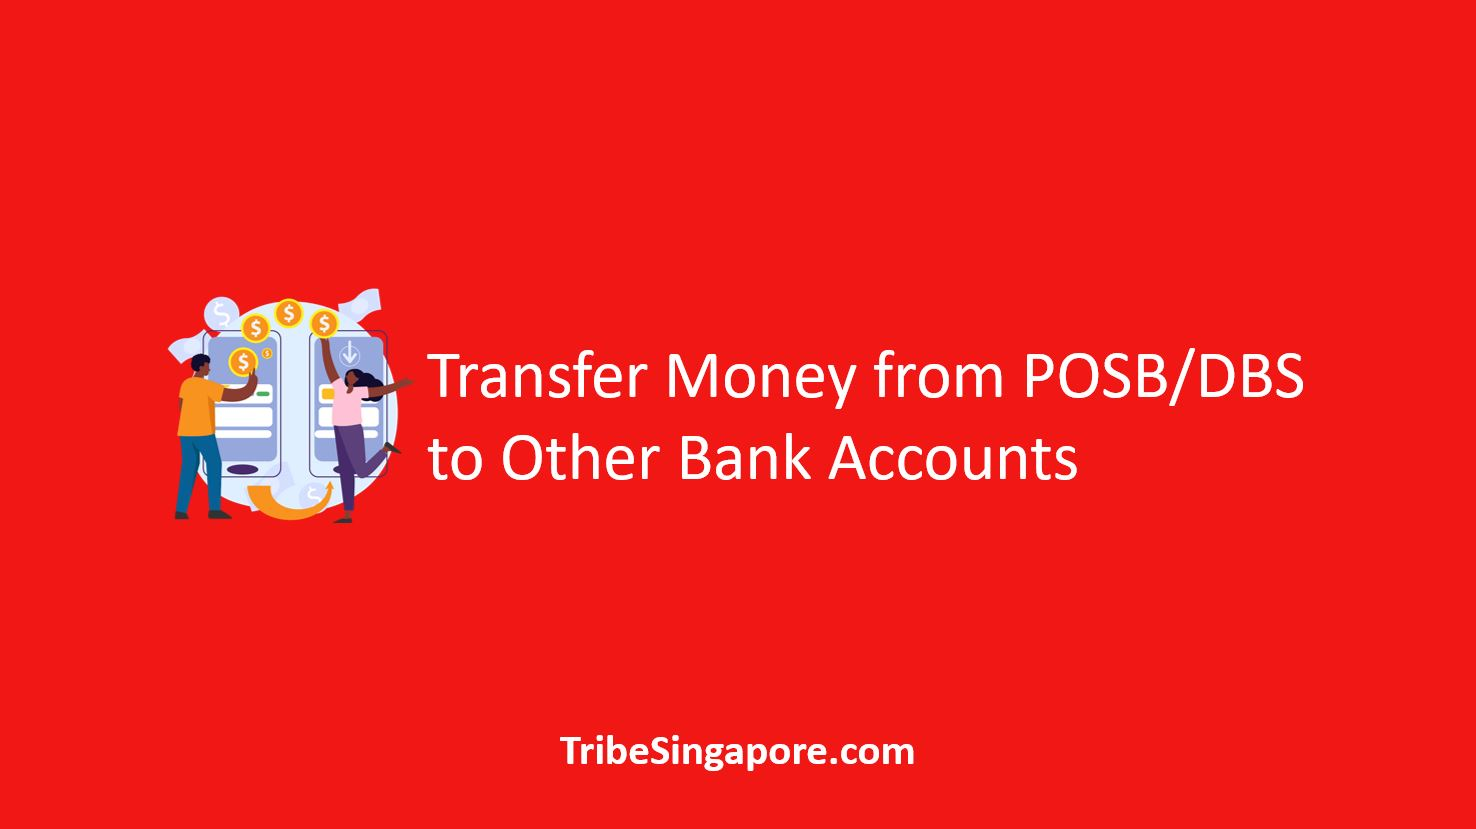 How to Transfer Money from POSB/DBS to Other Bank Accounts